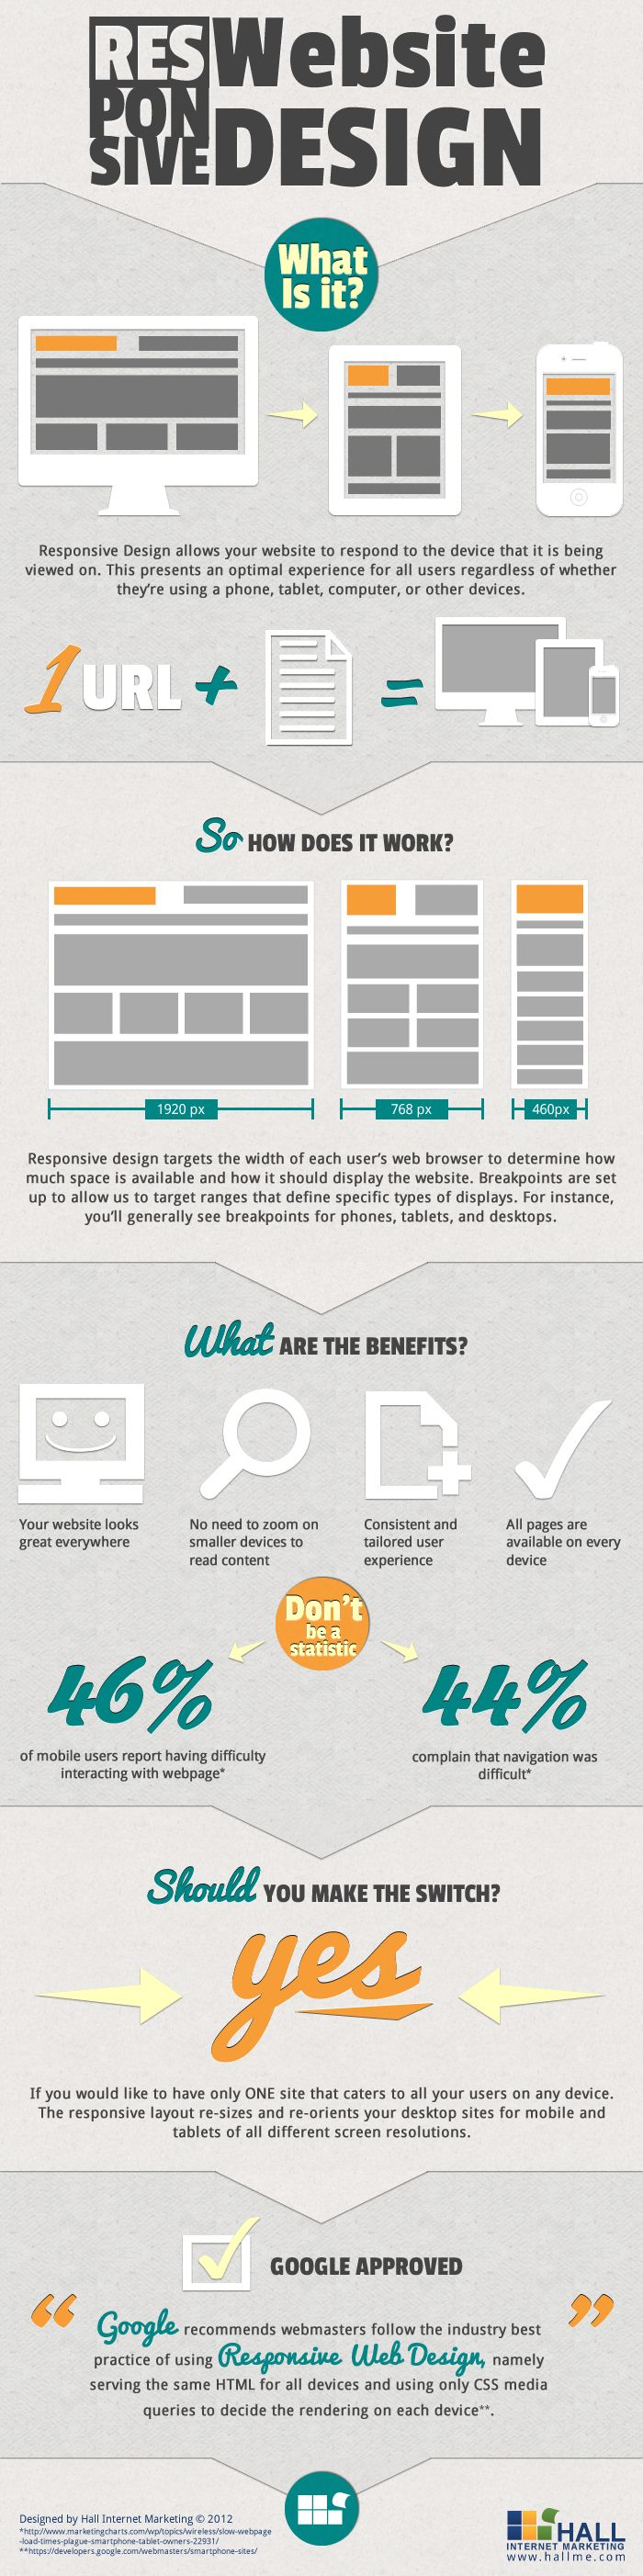 Responsive web design. What is it? And why your company should switch...